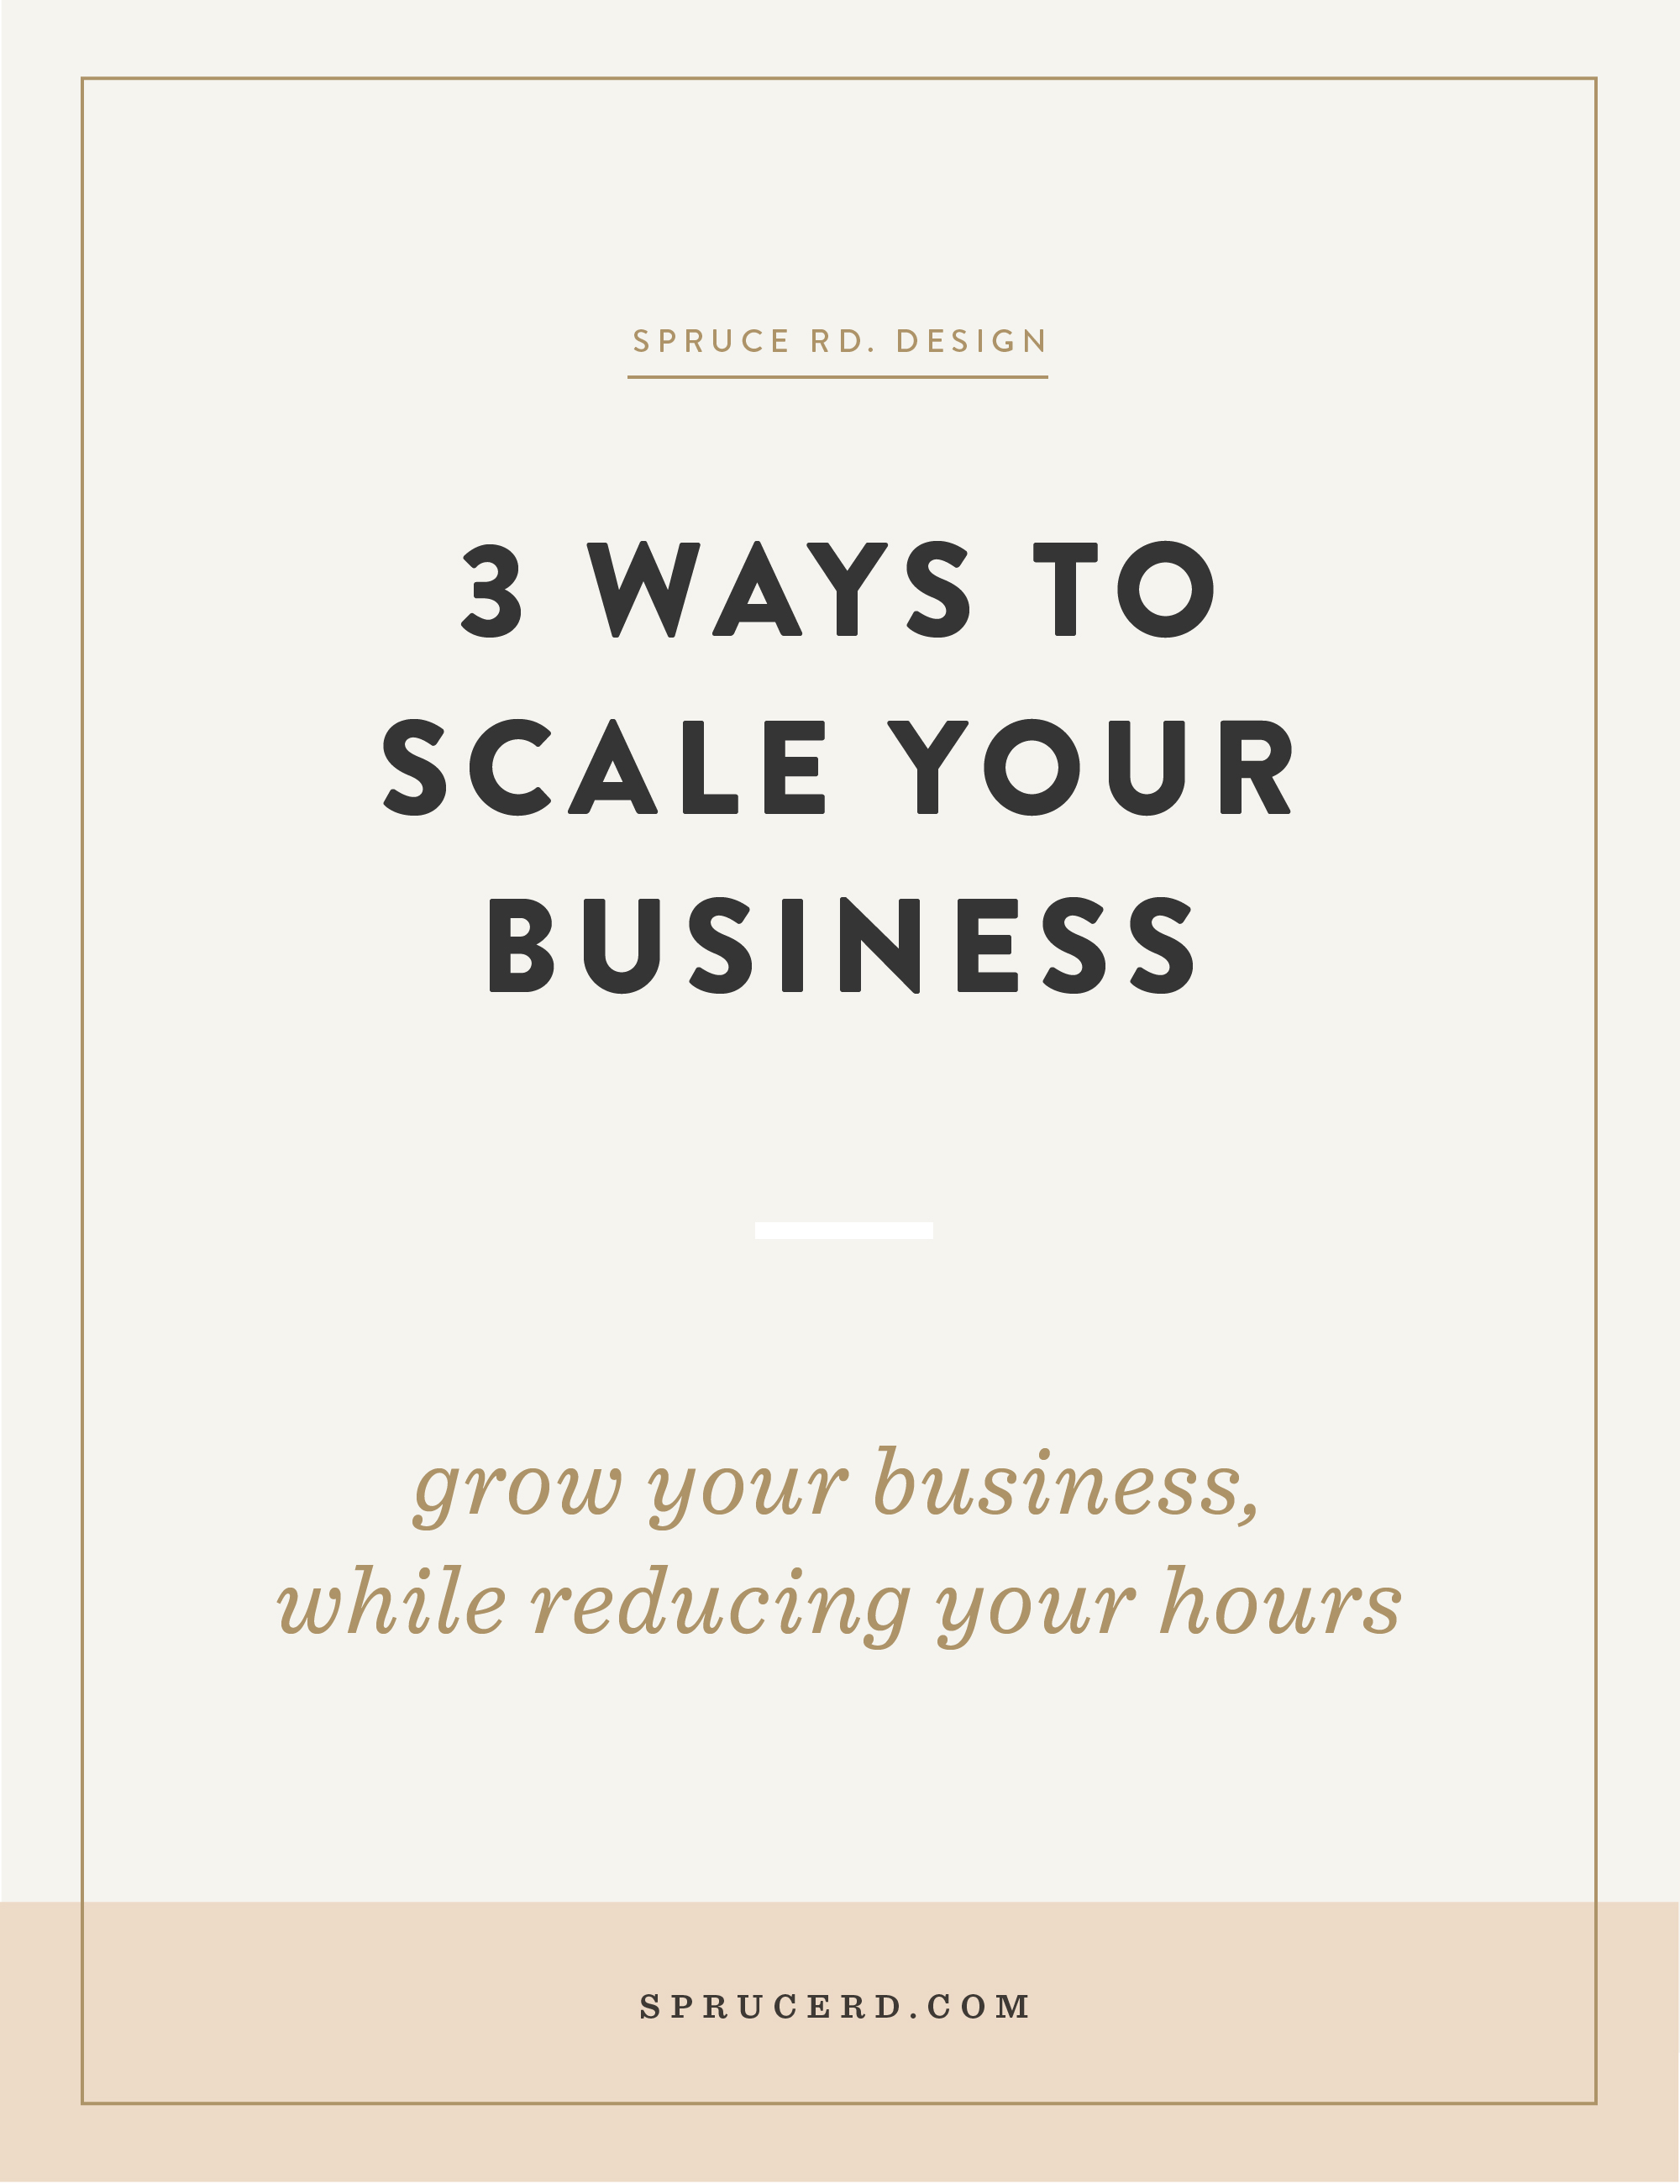 3 Ways to Scale Your Business | Spruce Rd. | Chances are, if you're a budding online entrepreneur, you've got your eyes set on increasing visibility this year. In this post, I'm sharing how I plan to grow my business, while also scaling back my time investment.